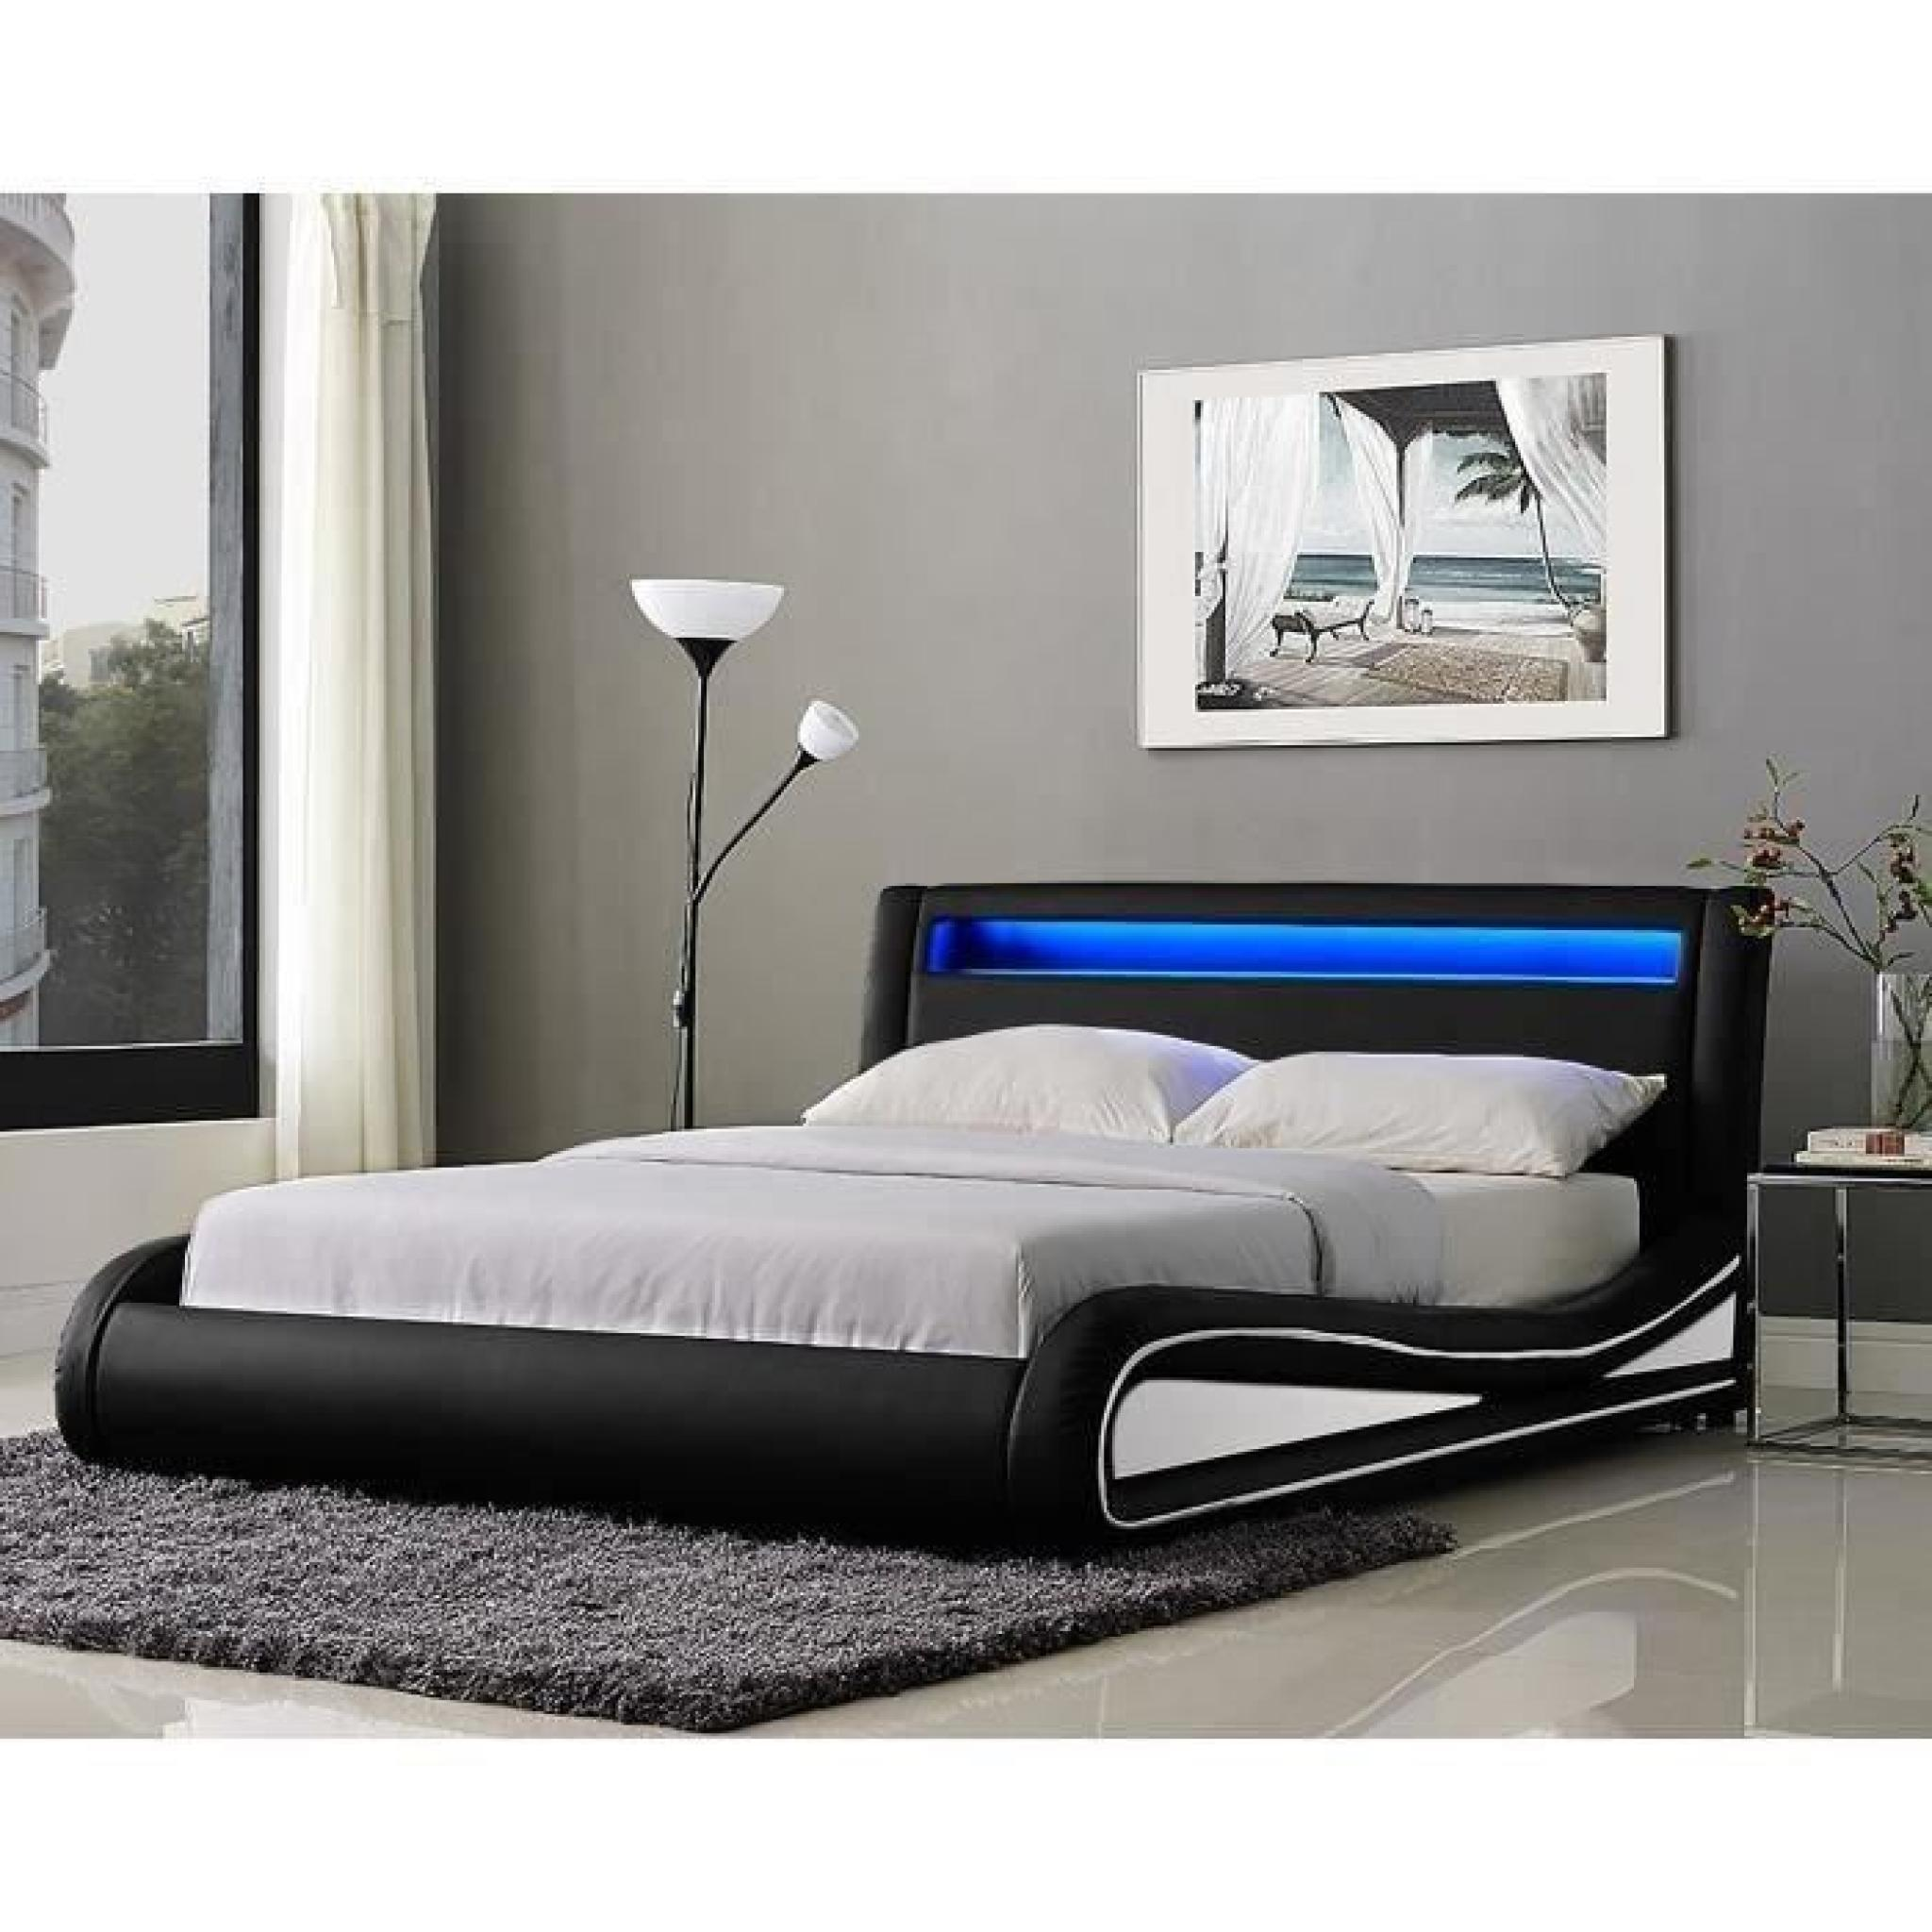 neptune lit led adulte 180x200 cm noir et blanc achat. Black Bedroom Furniture Sets. Home Design Ideas